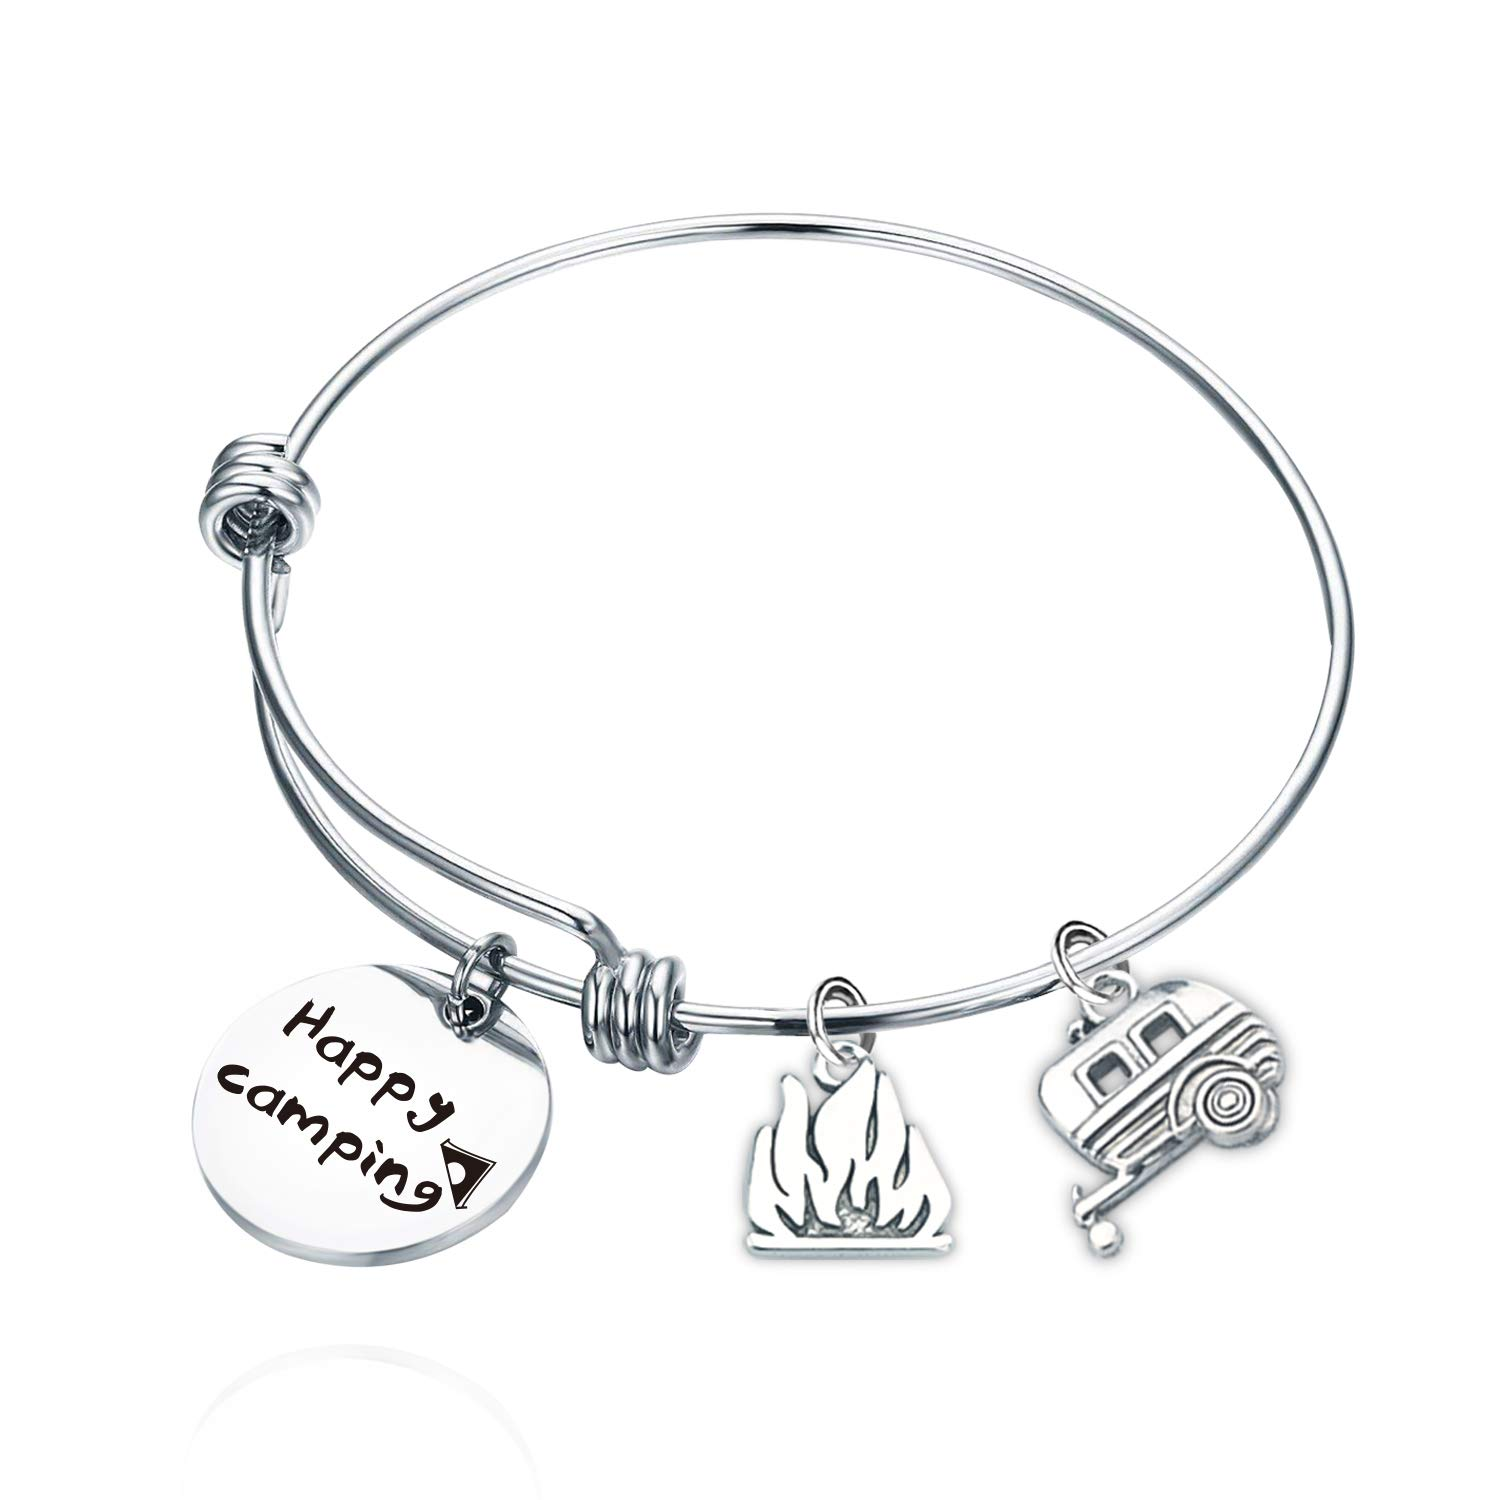 SIDIMELO Campers Gifts Funny Gifts Campers Bracelet Camping Lovers Gifts Happy Camping Jewelry Trailer Vacation Jewelry Happy Camping Bracelet